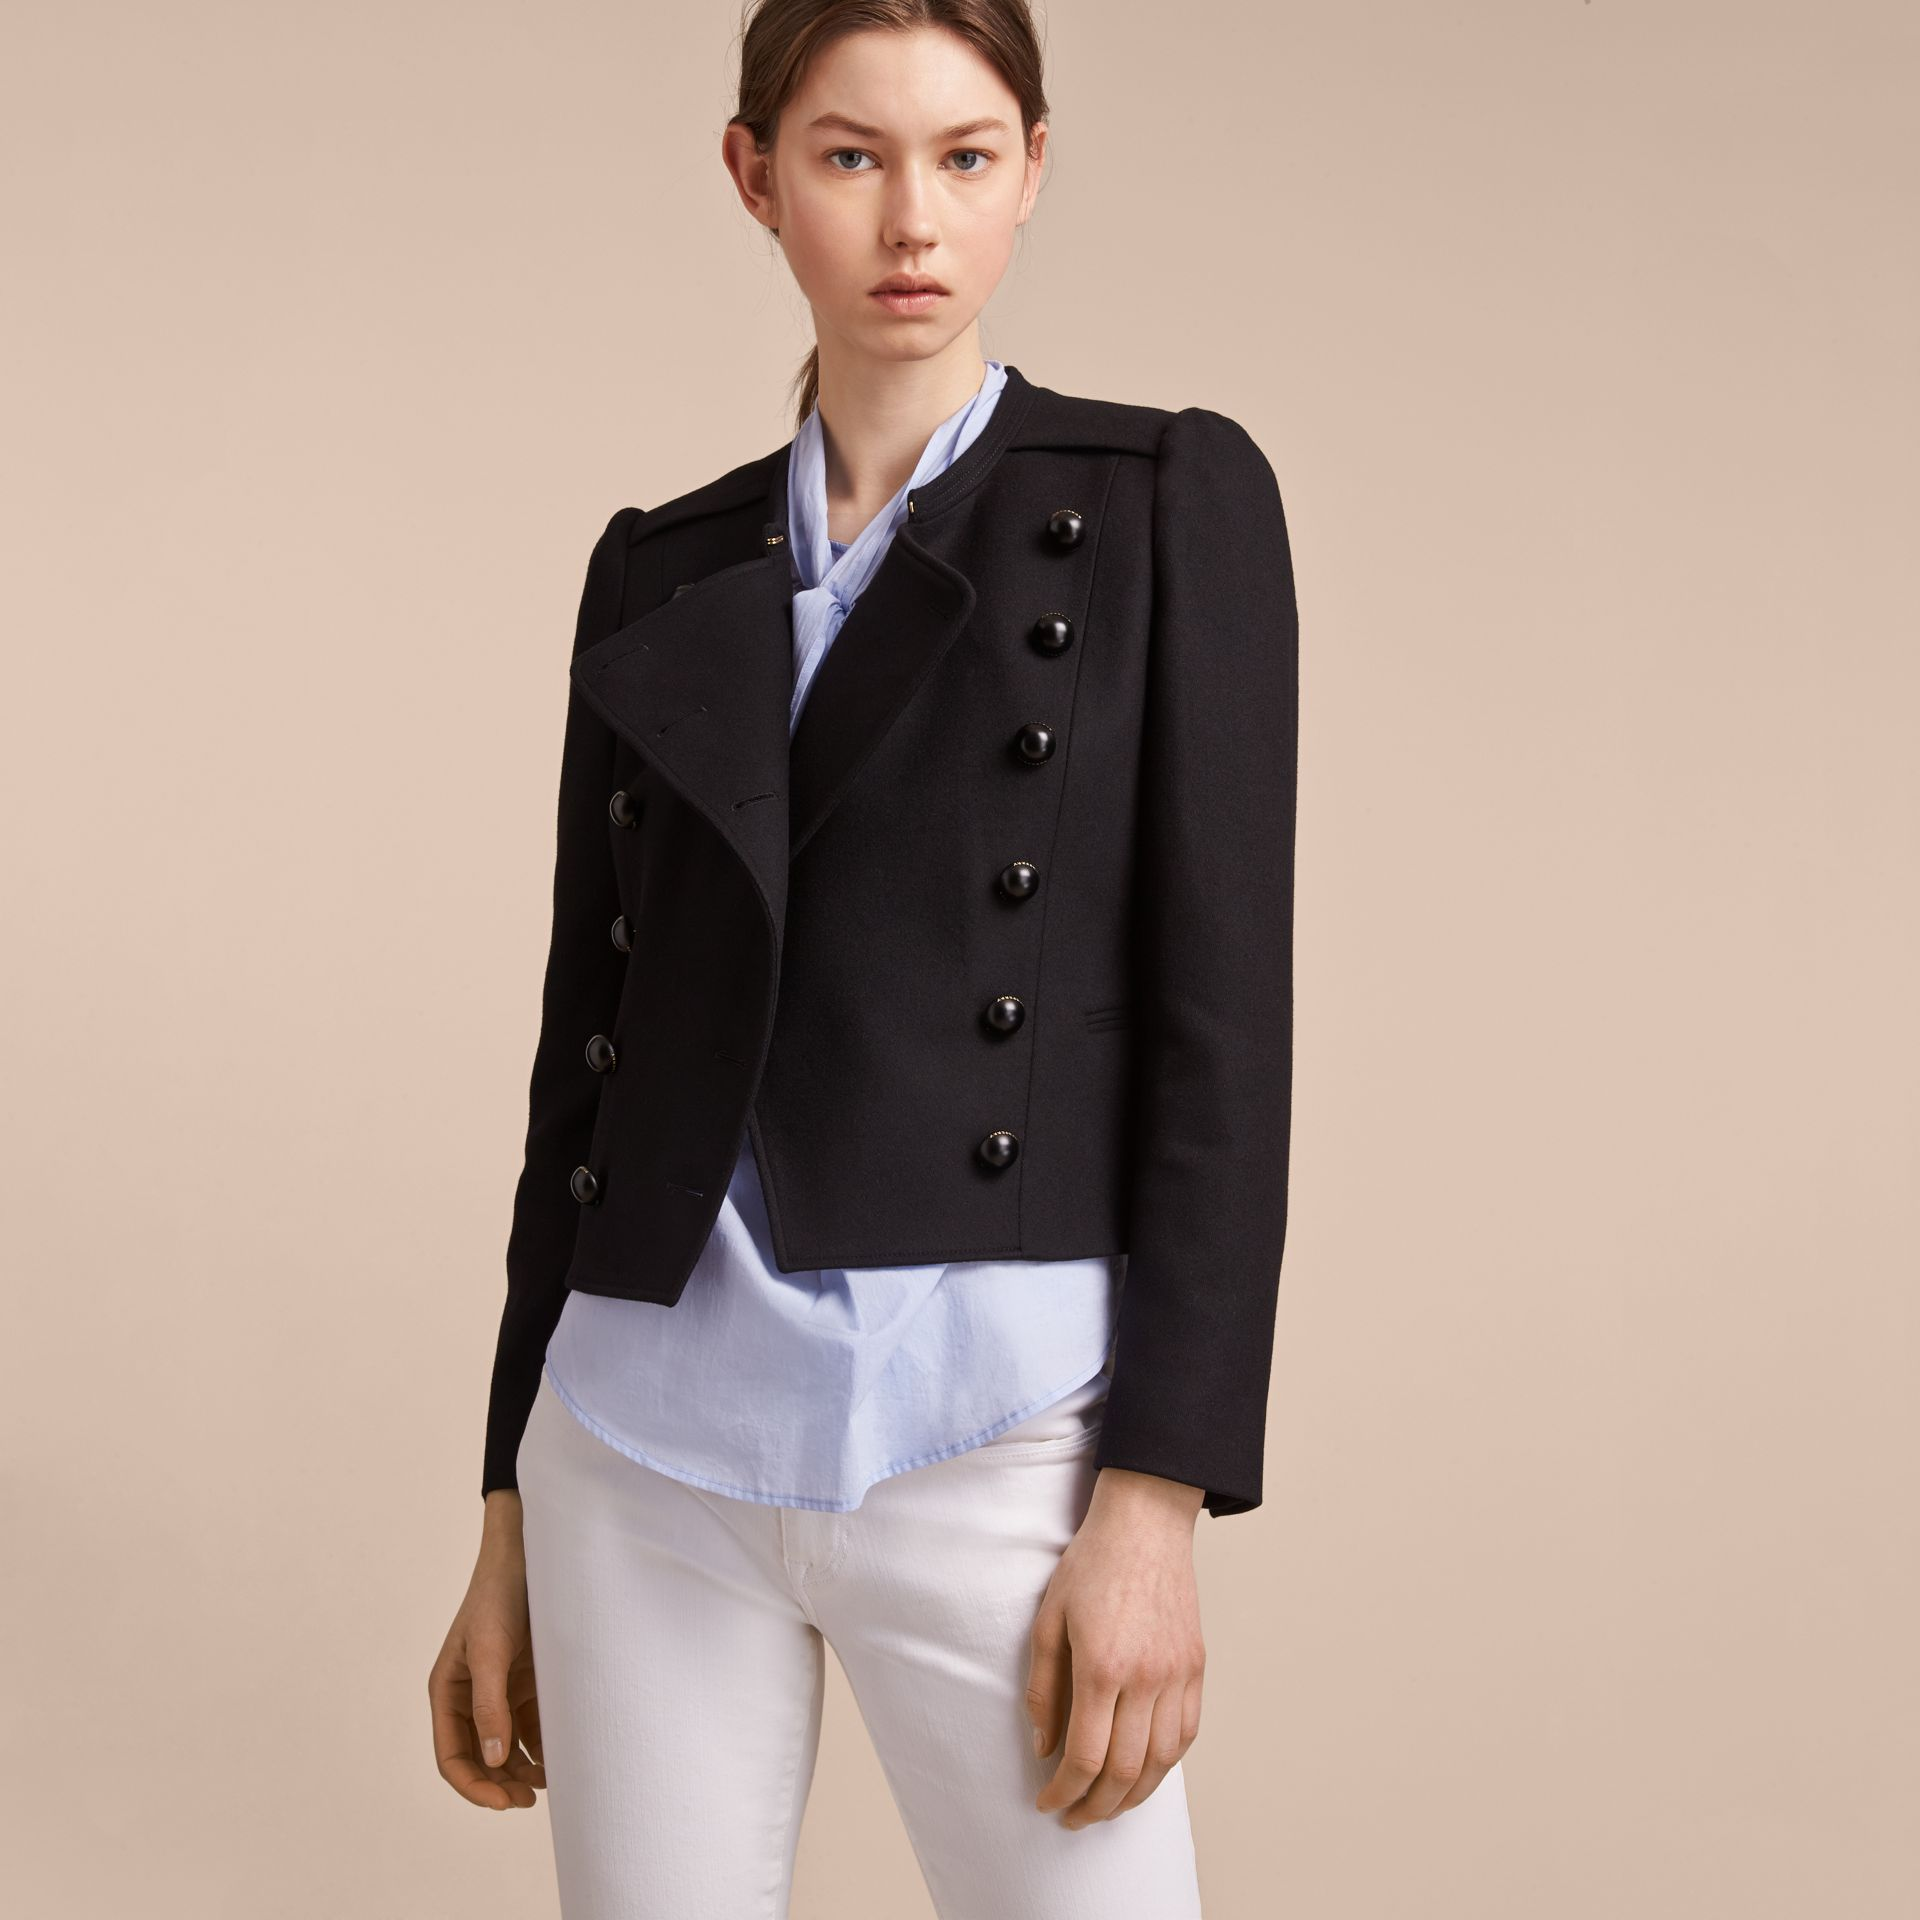 Wool Blend Double-breasted Jacket in Black - Women | Burberry United Kingdom - gallery image 6